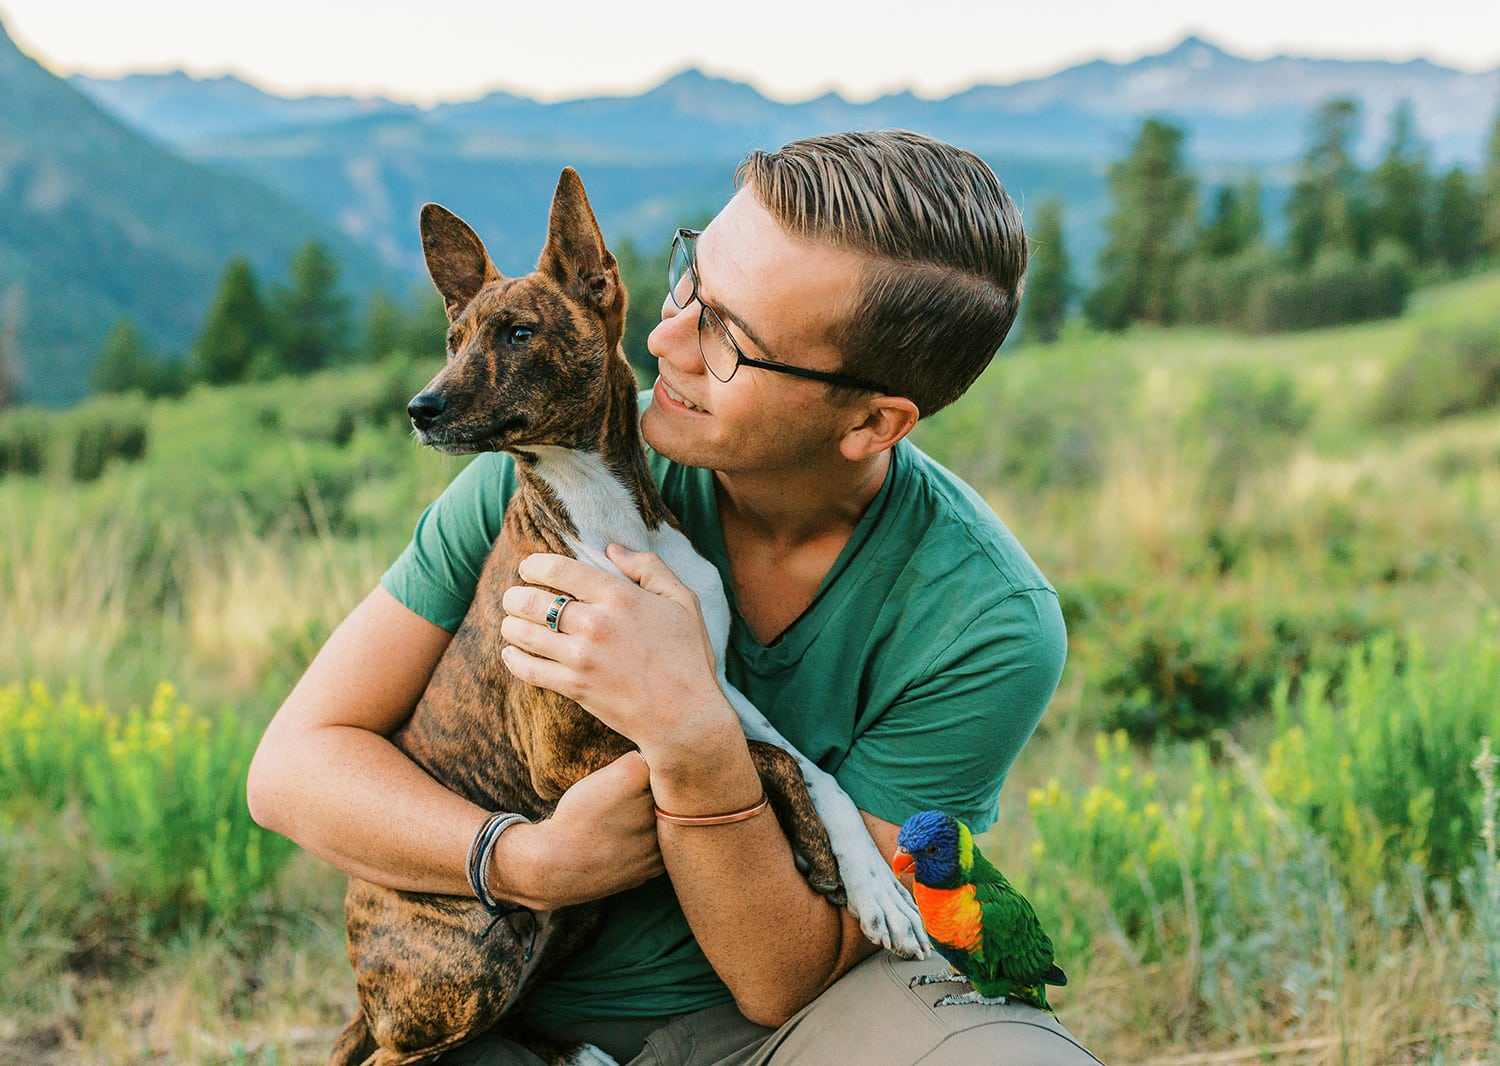 Malachi Lewis at Shell Creek Photography with a dog and parrot.